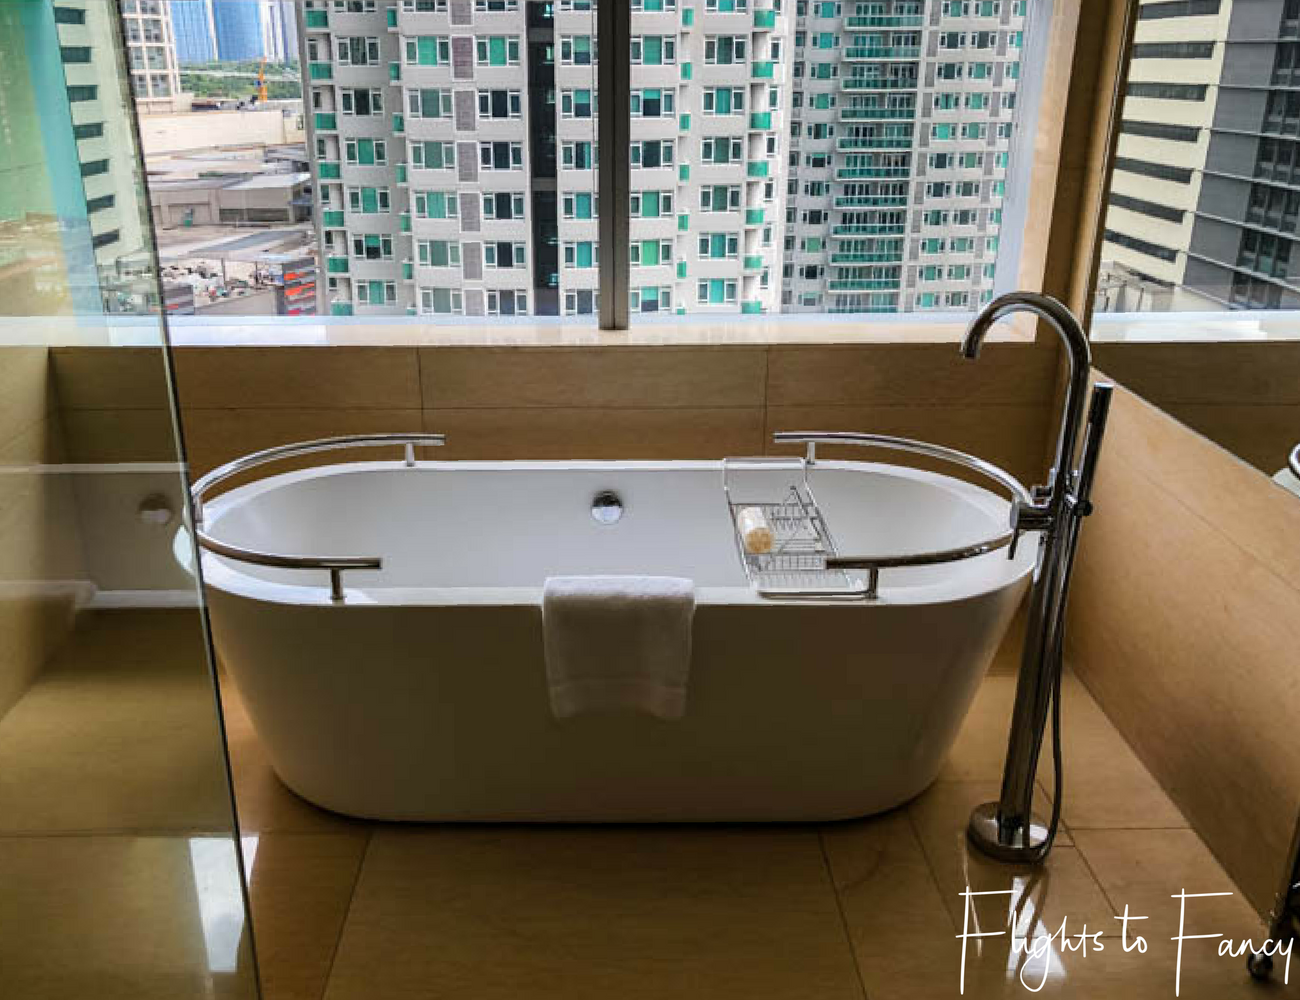 Flights To Fancy at Raffles Makati - This is where to stay in Manila!